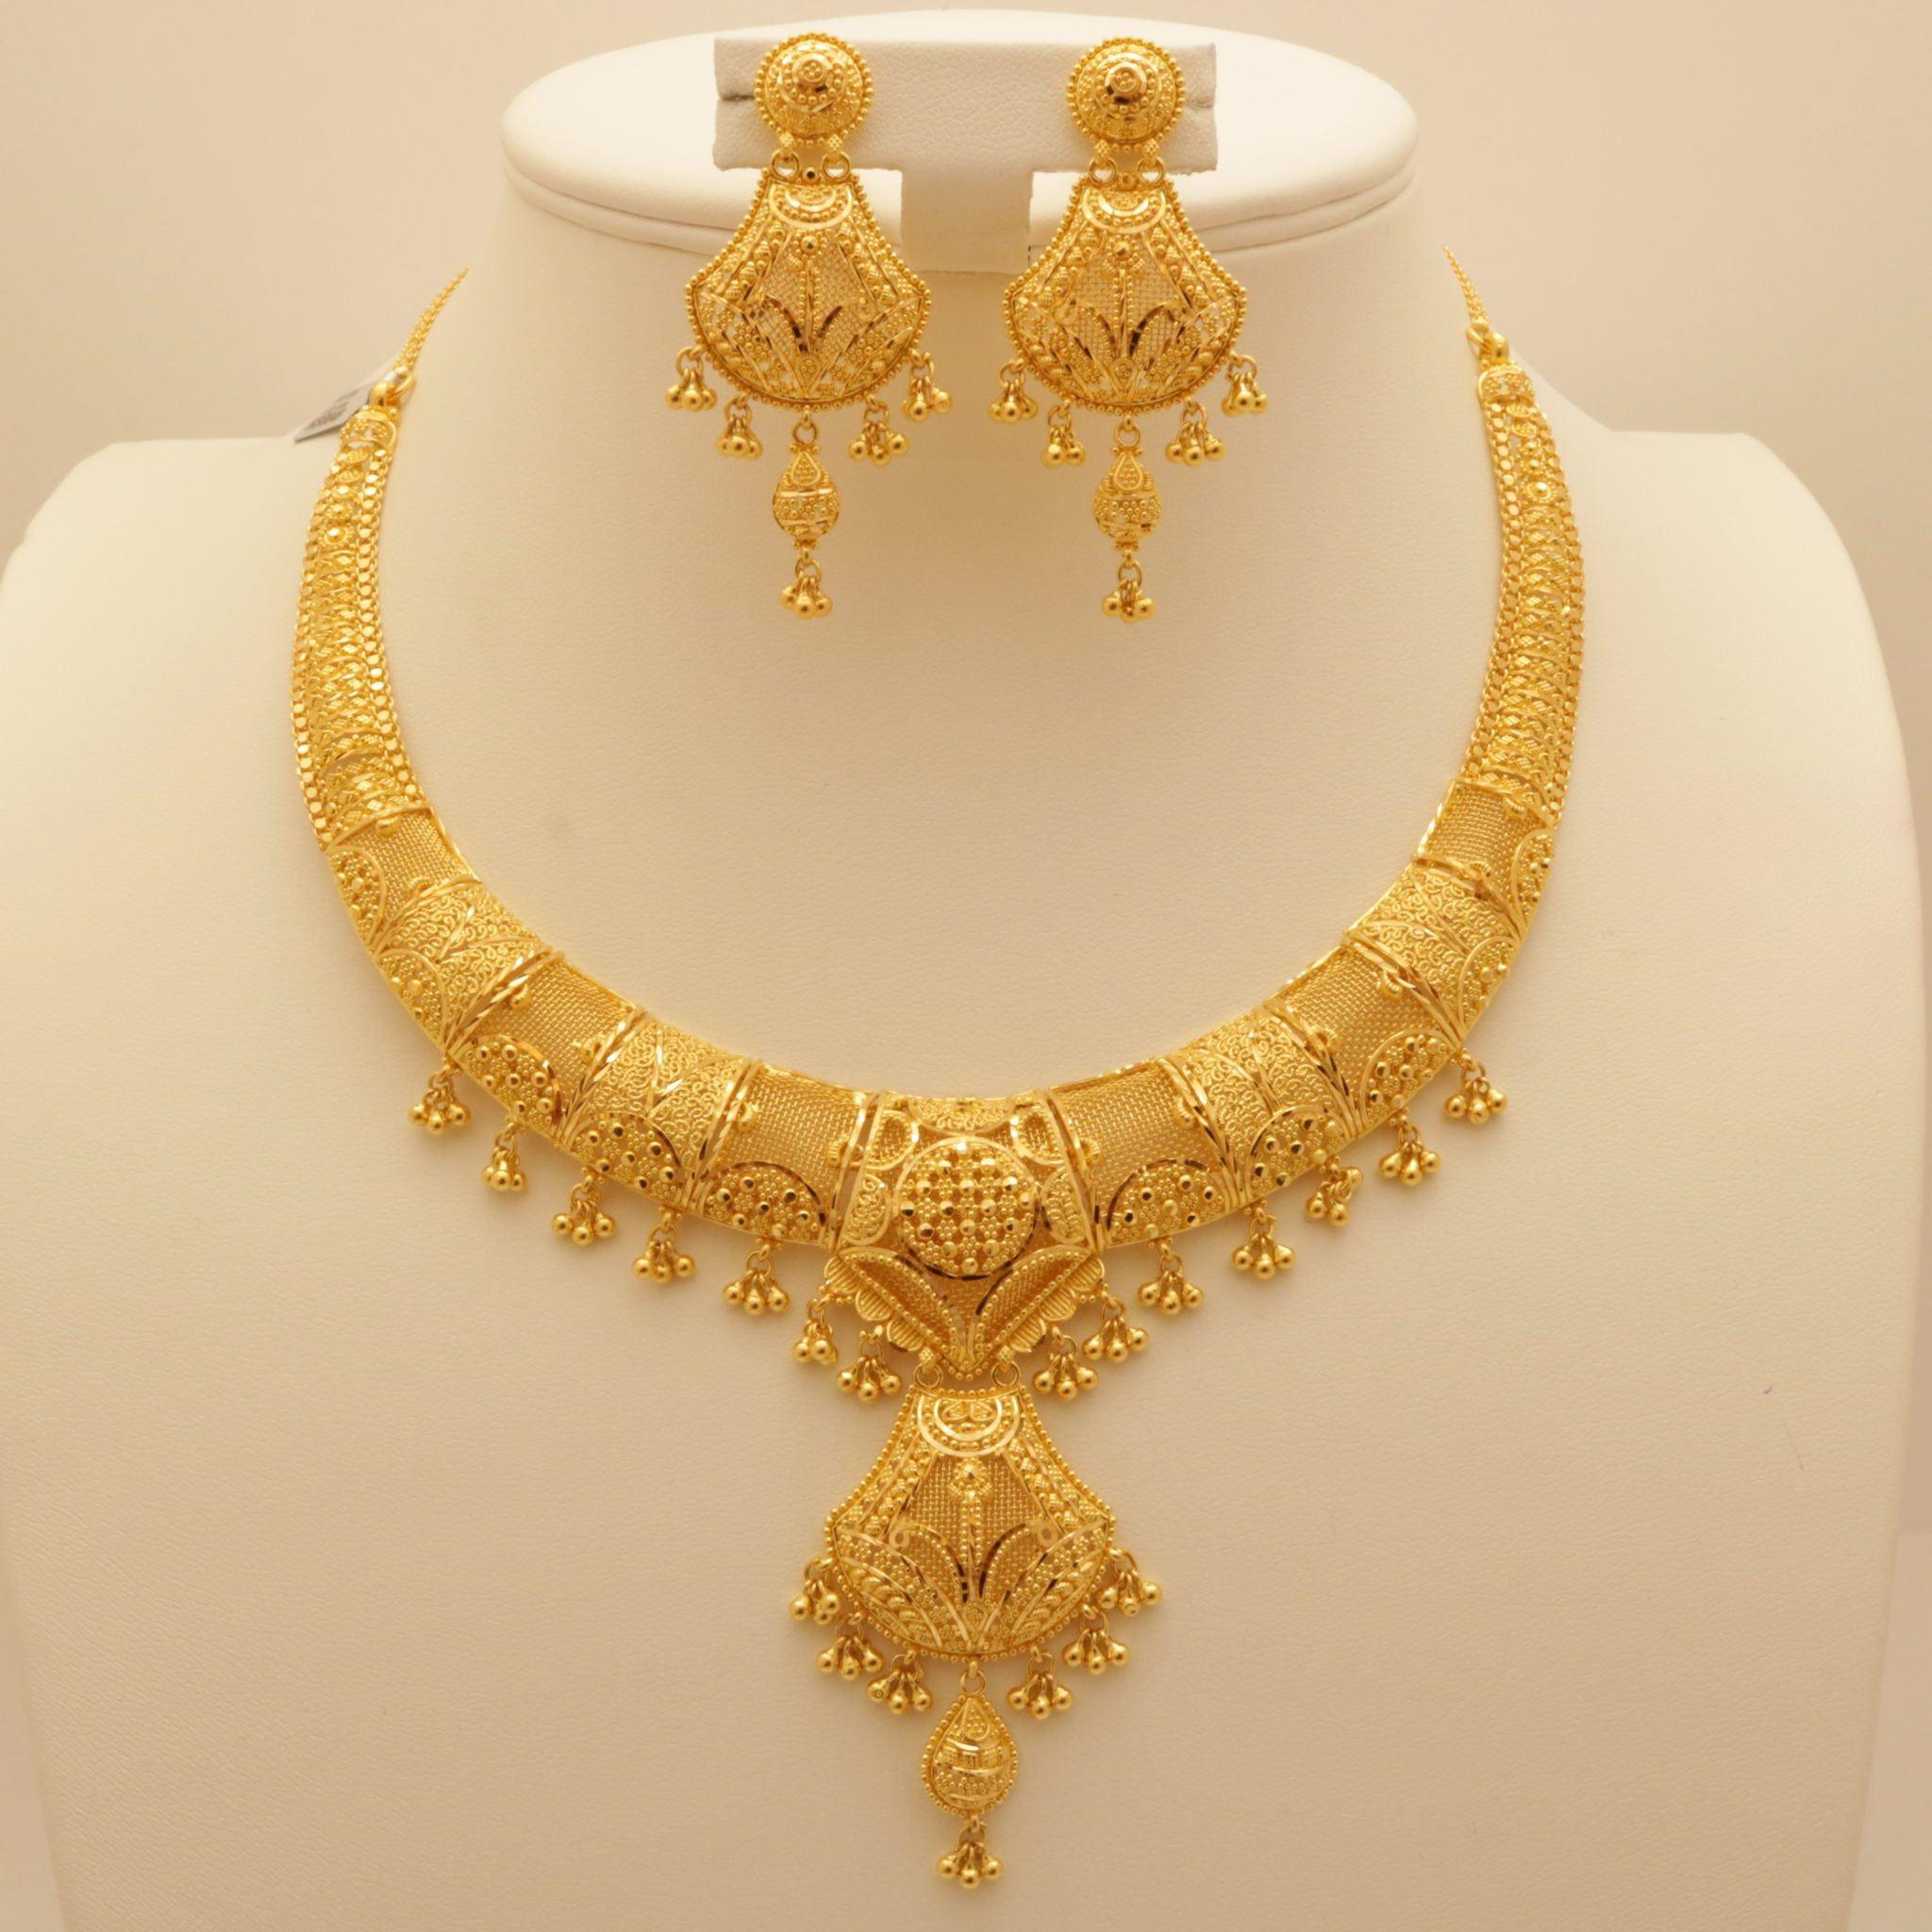 of for bride five some collection necklaces her indian jewellery an gold in necklace may beautiful add types